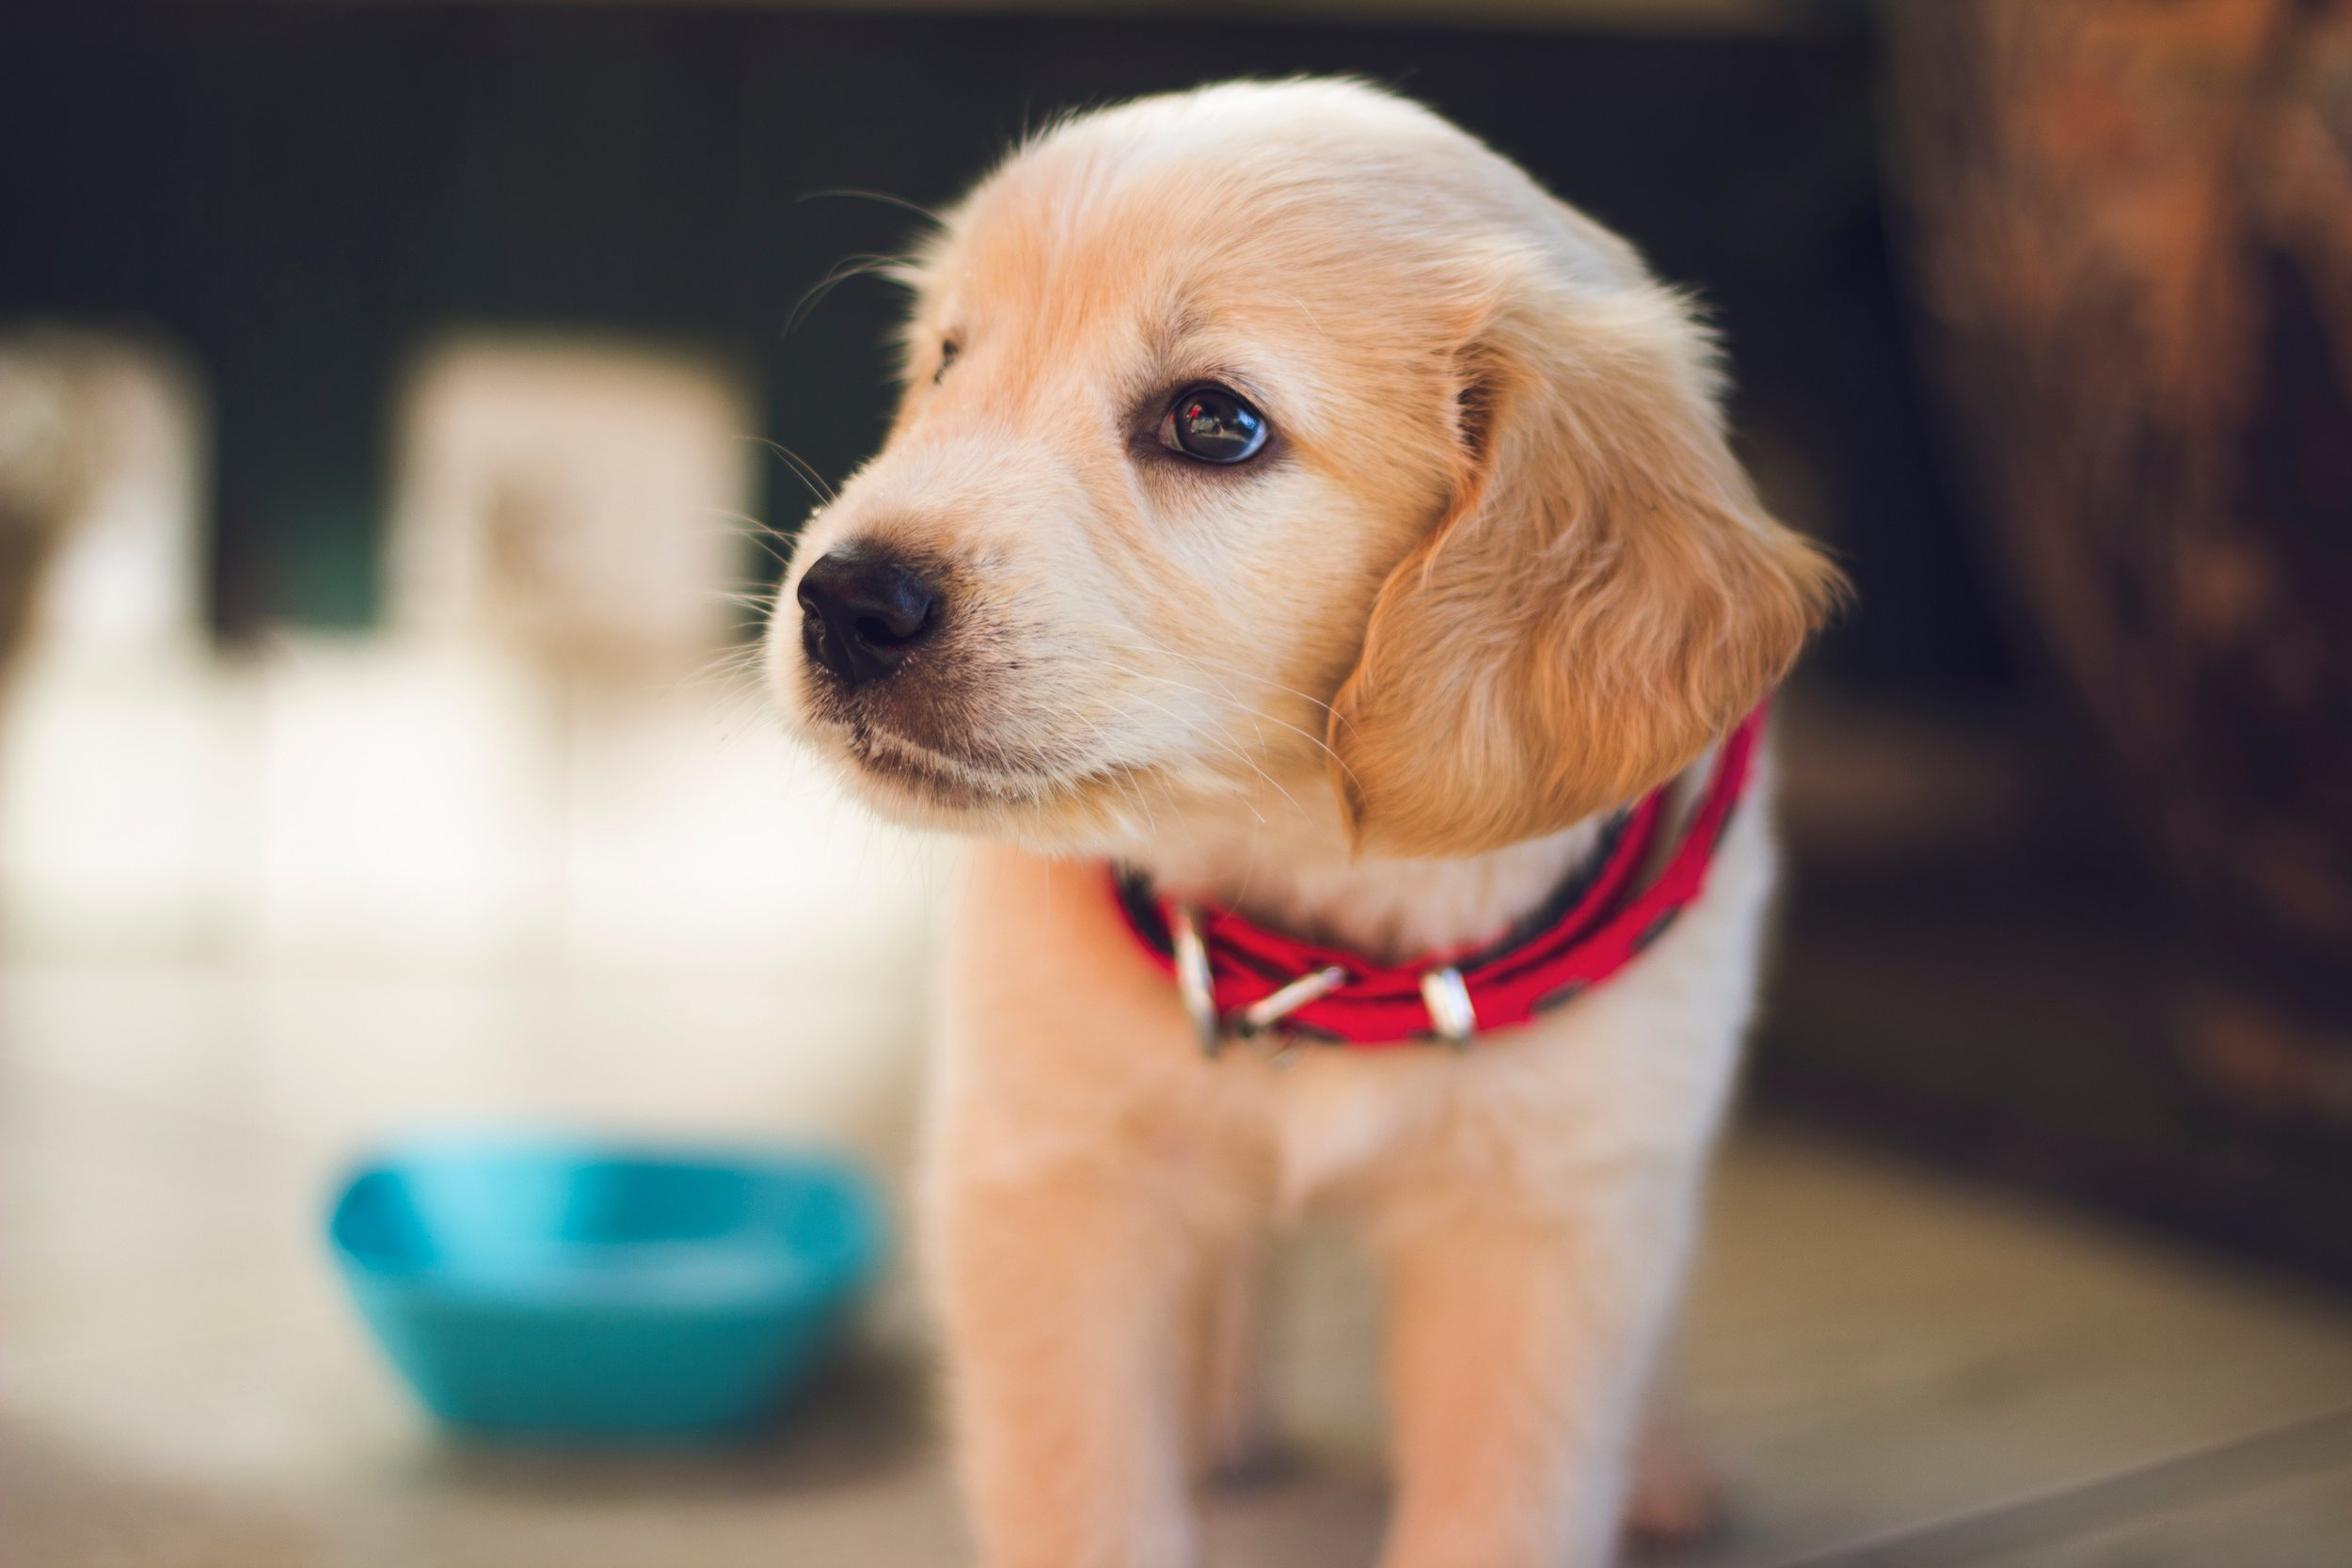 Service Animals in Salons & the Americans with Disabilities Act - by Jenny Bortman